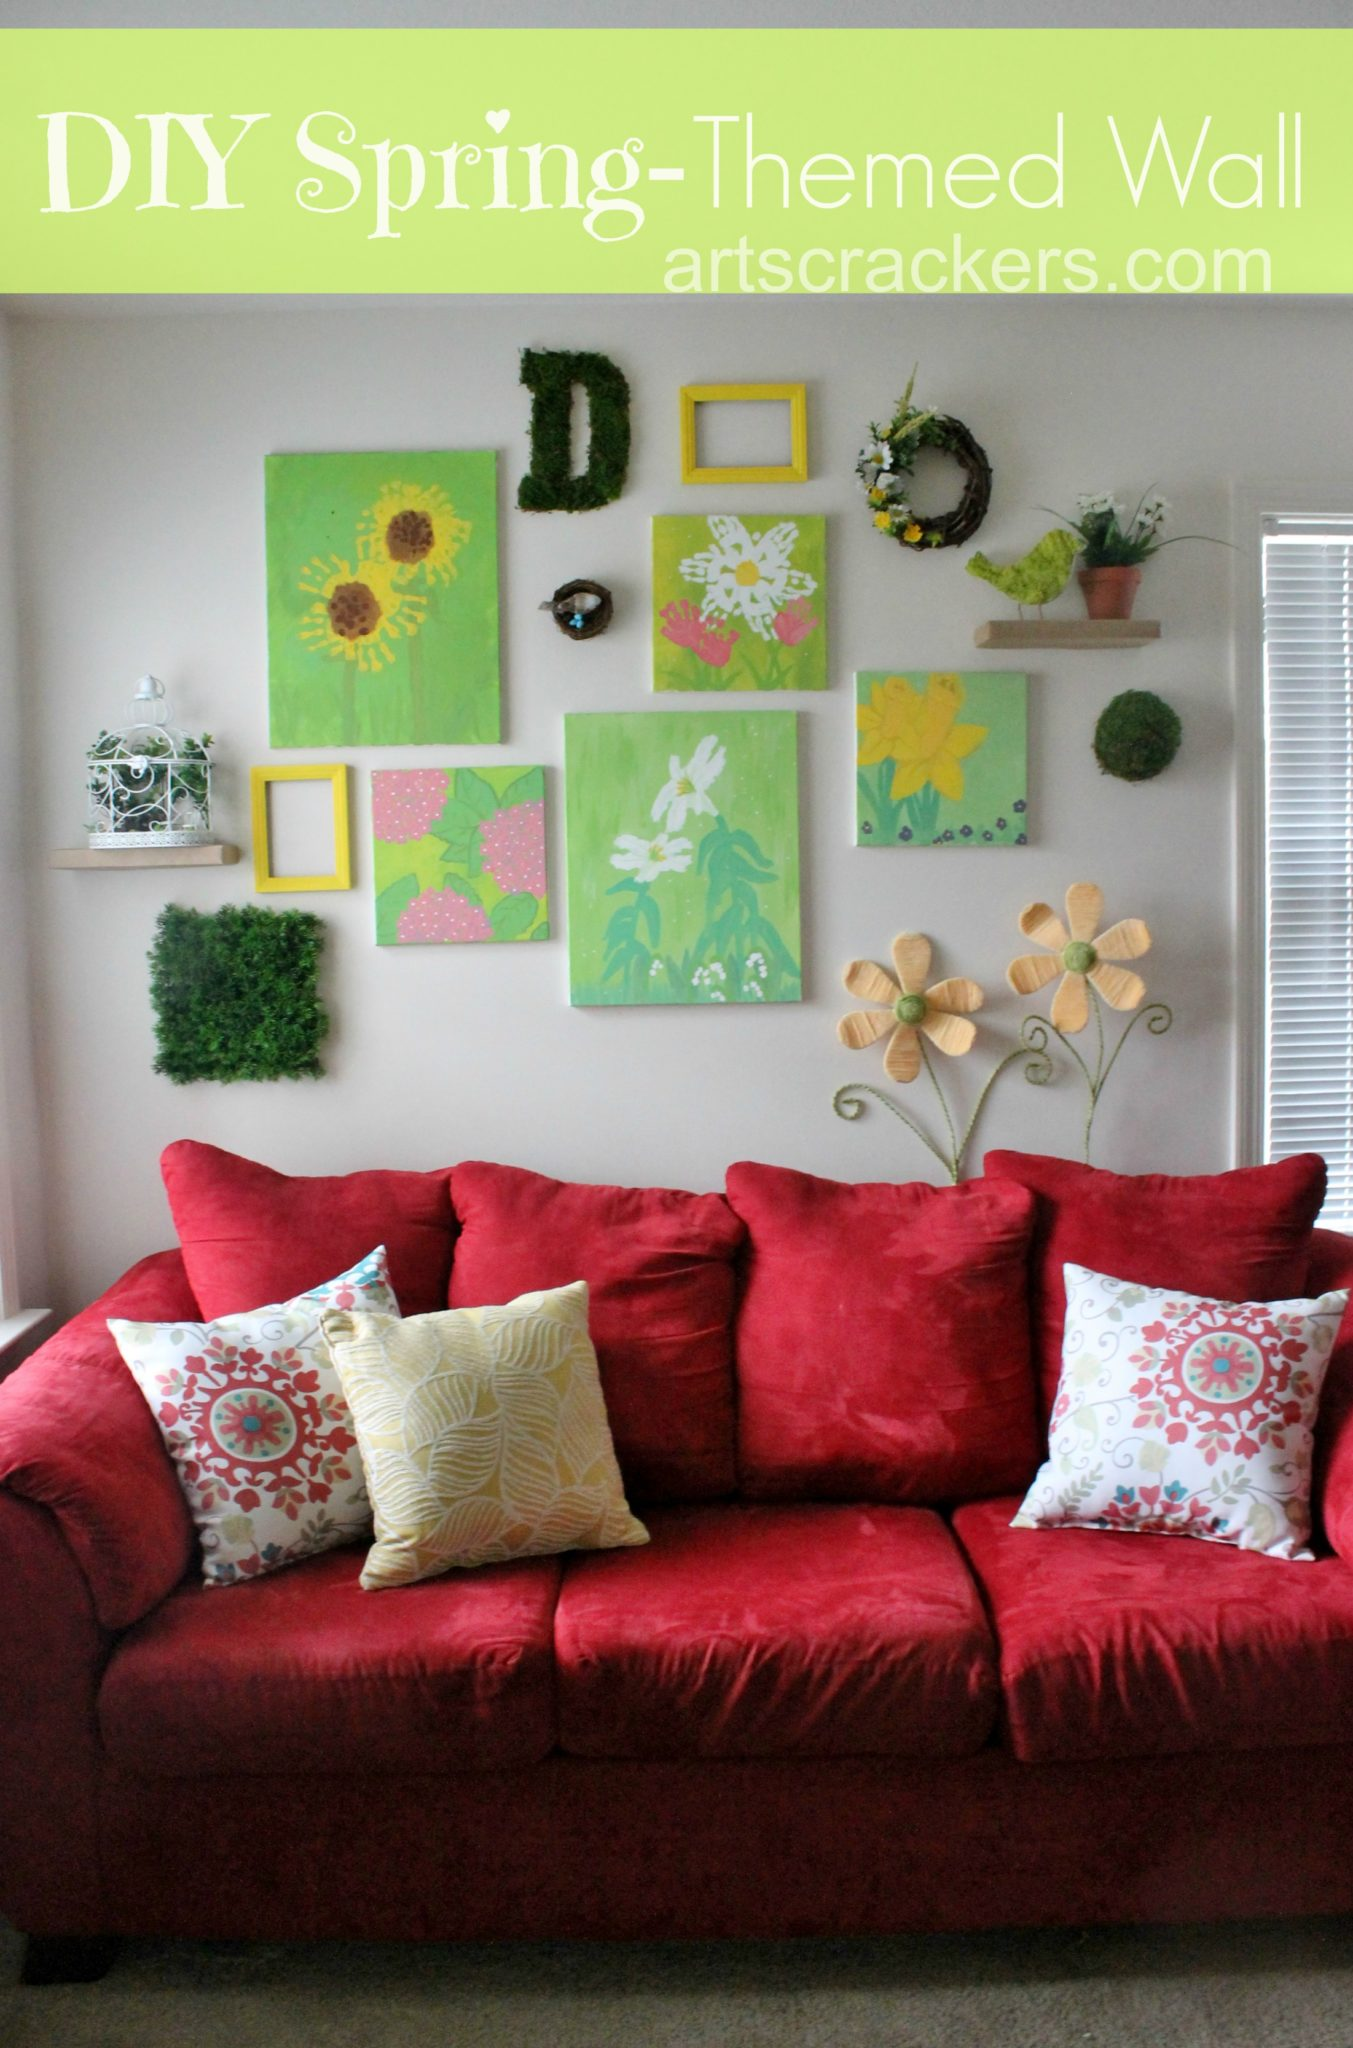 Diy Spring Wall Decor : Diy spring themed wall collage